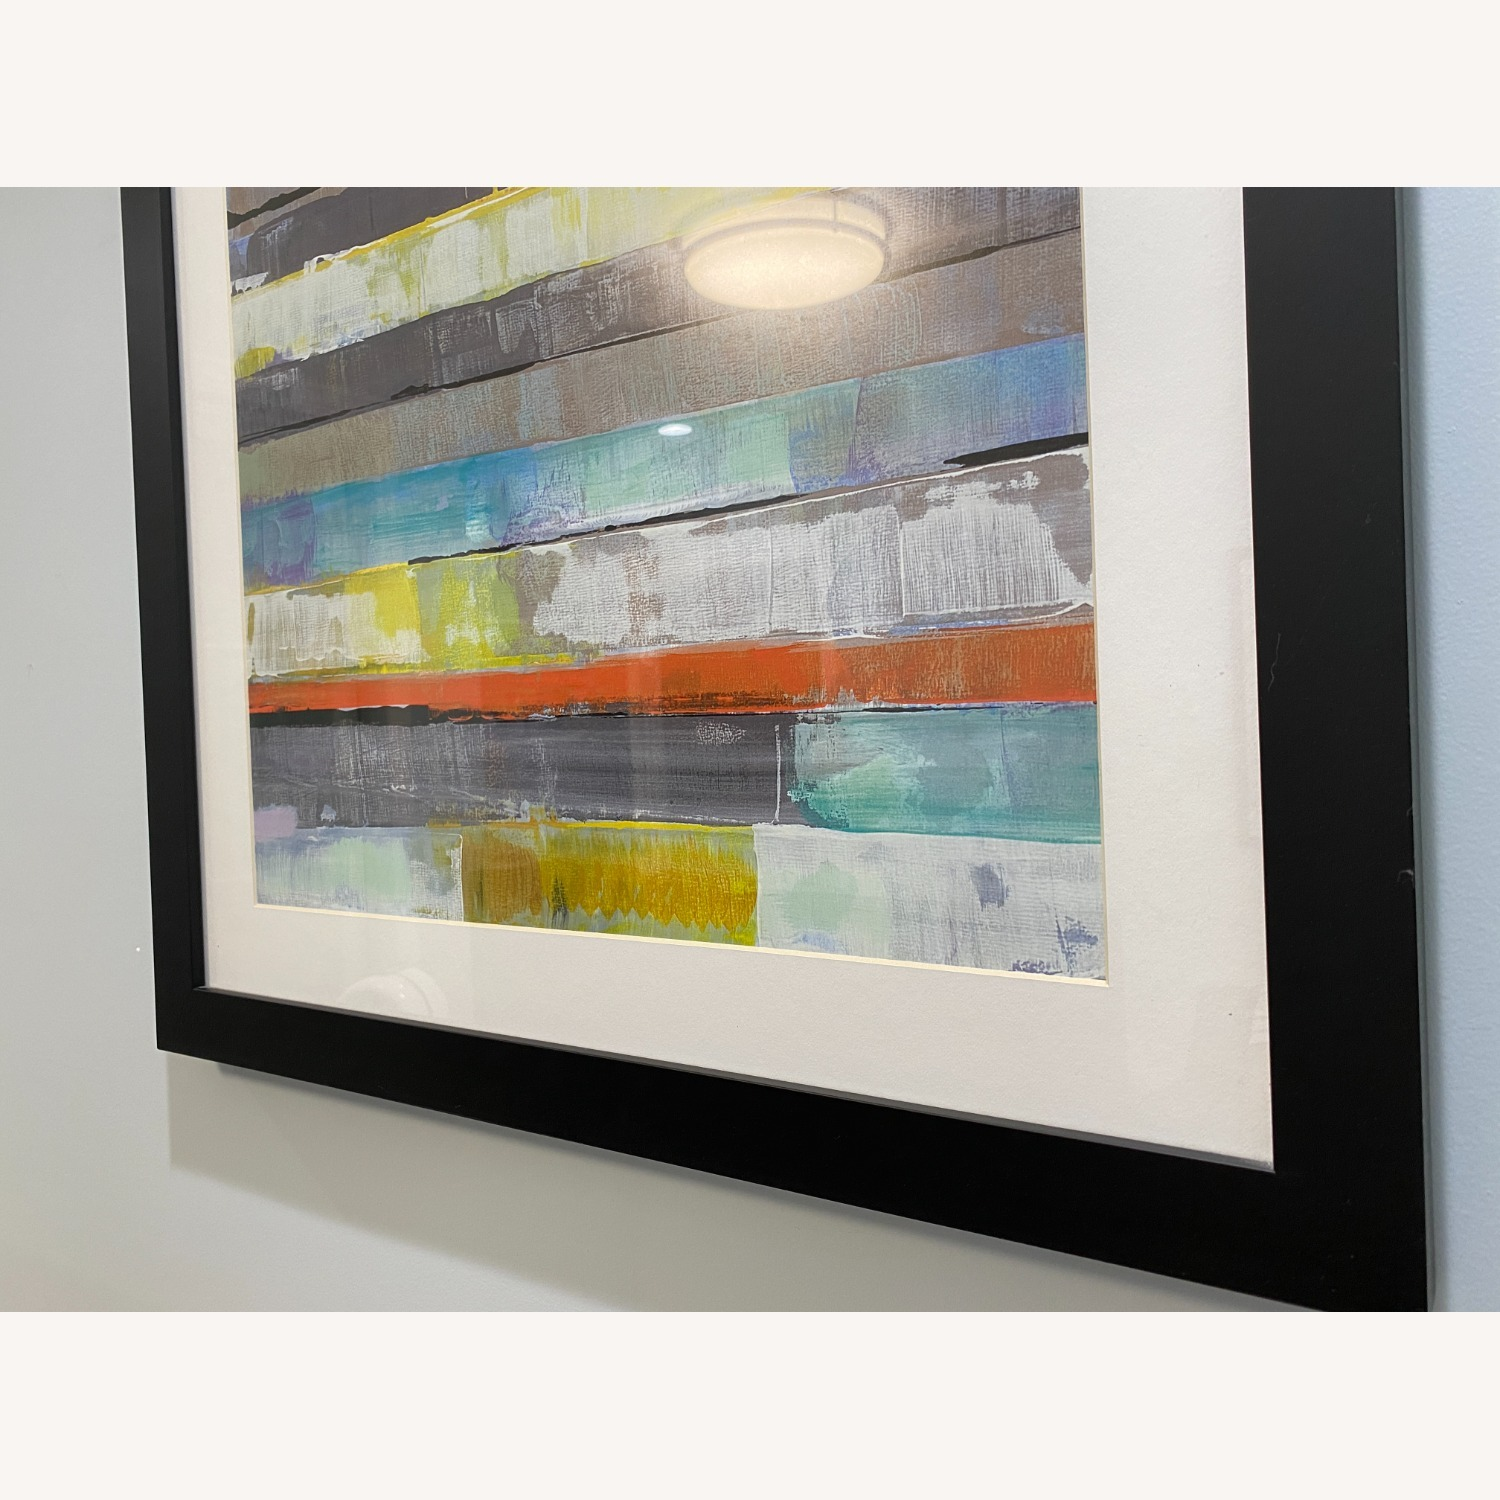 Abstract Z-Gallerie Wall Art: Metro 1 & 2 - image-7